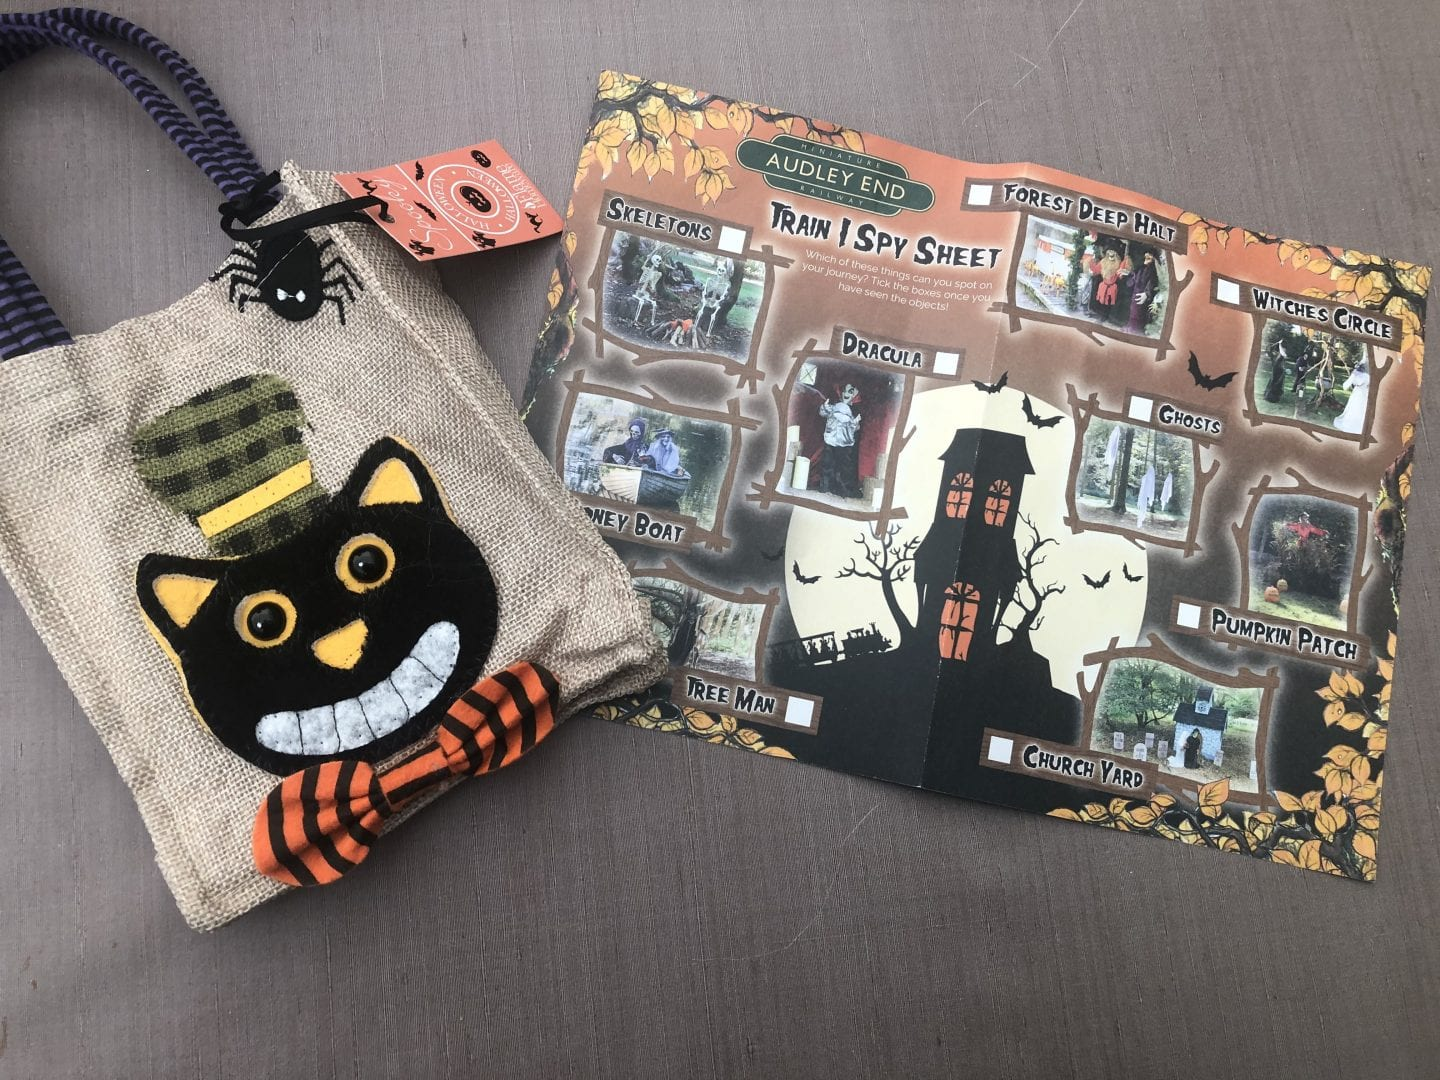 Trick or treat bag with Train-I-Spy sheet